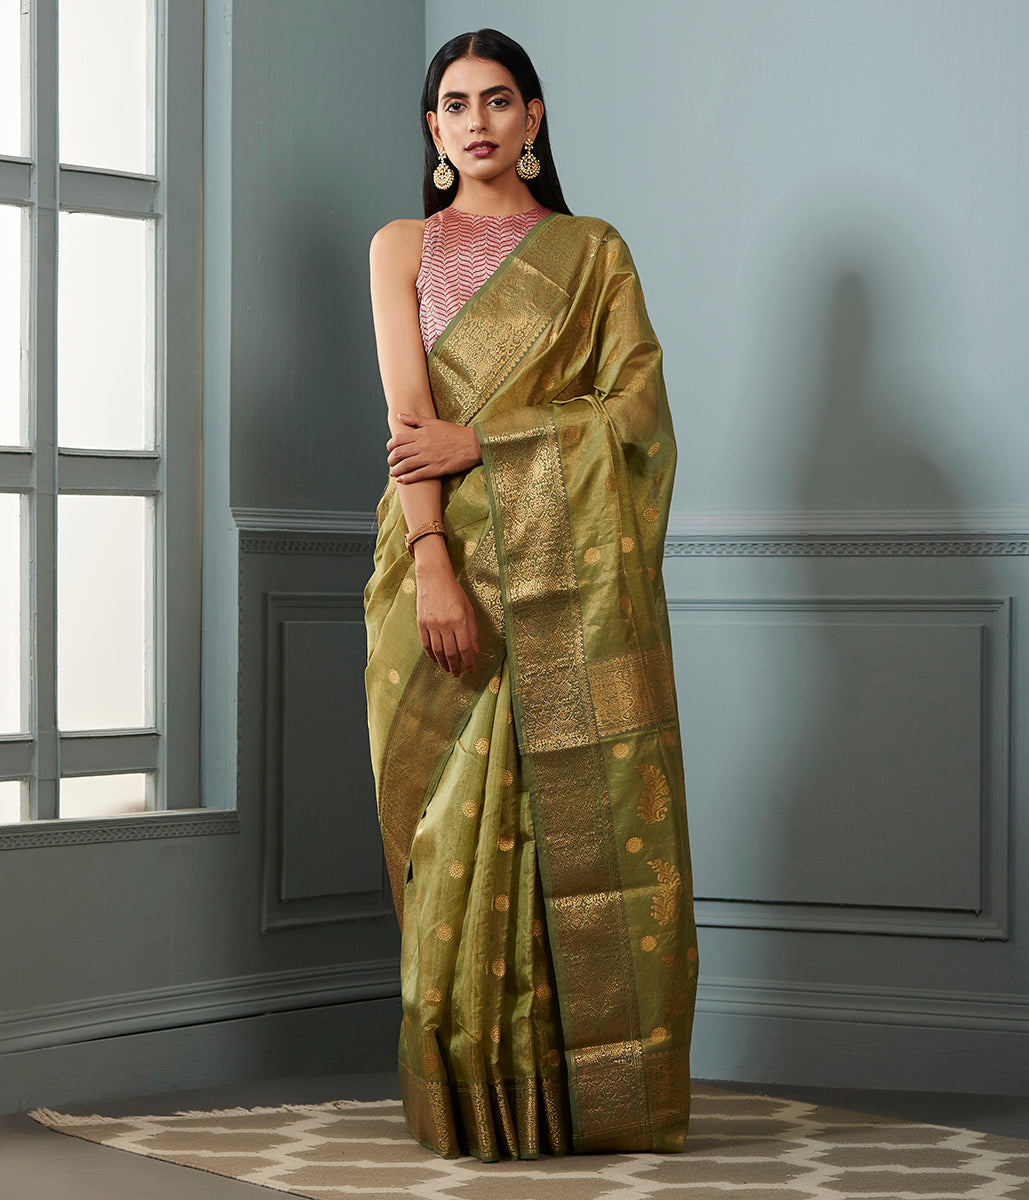 Pista green Chanderi tissue silk saree with asharfi booti and meenakari